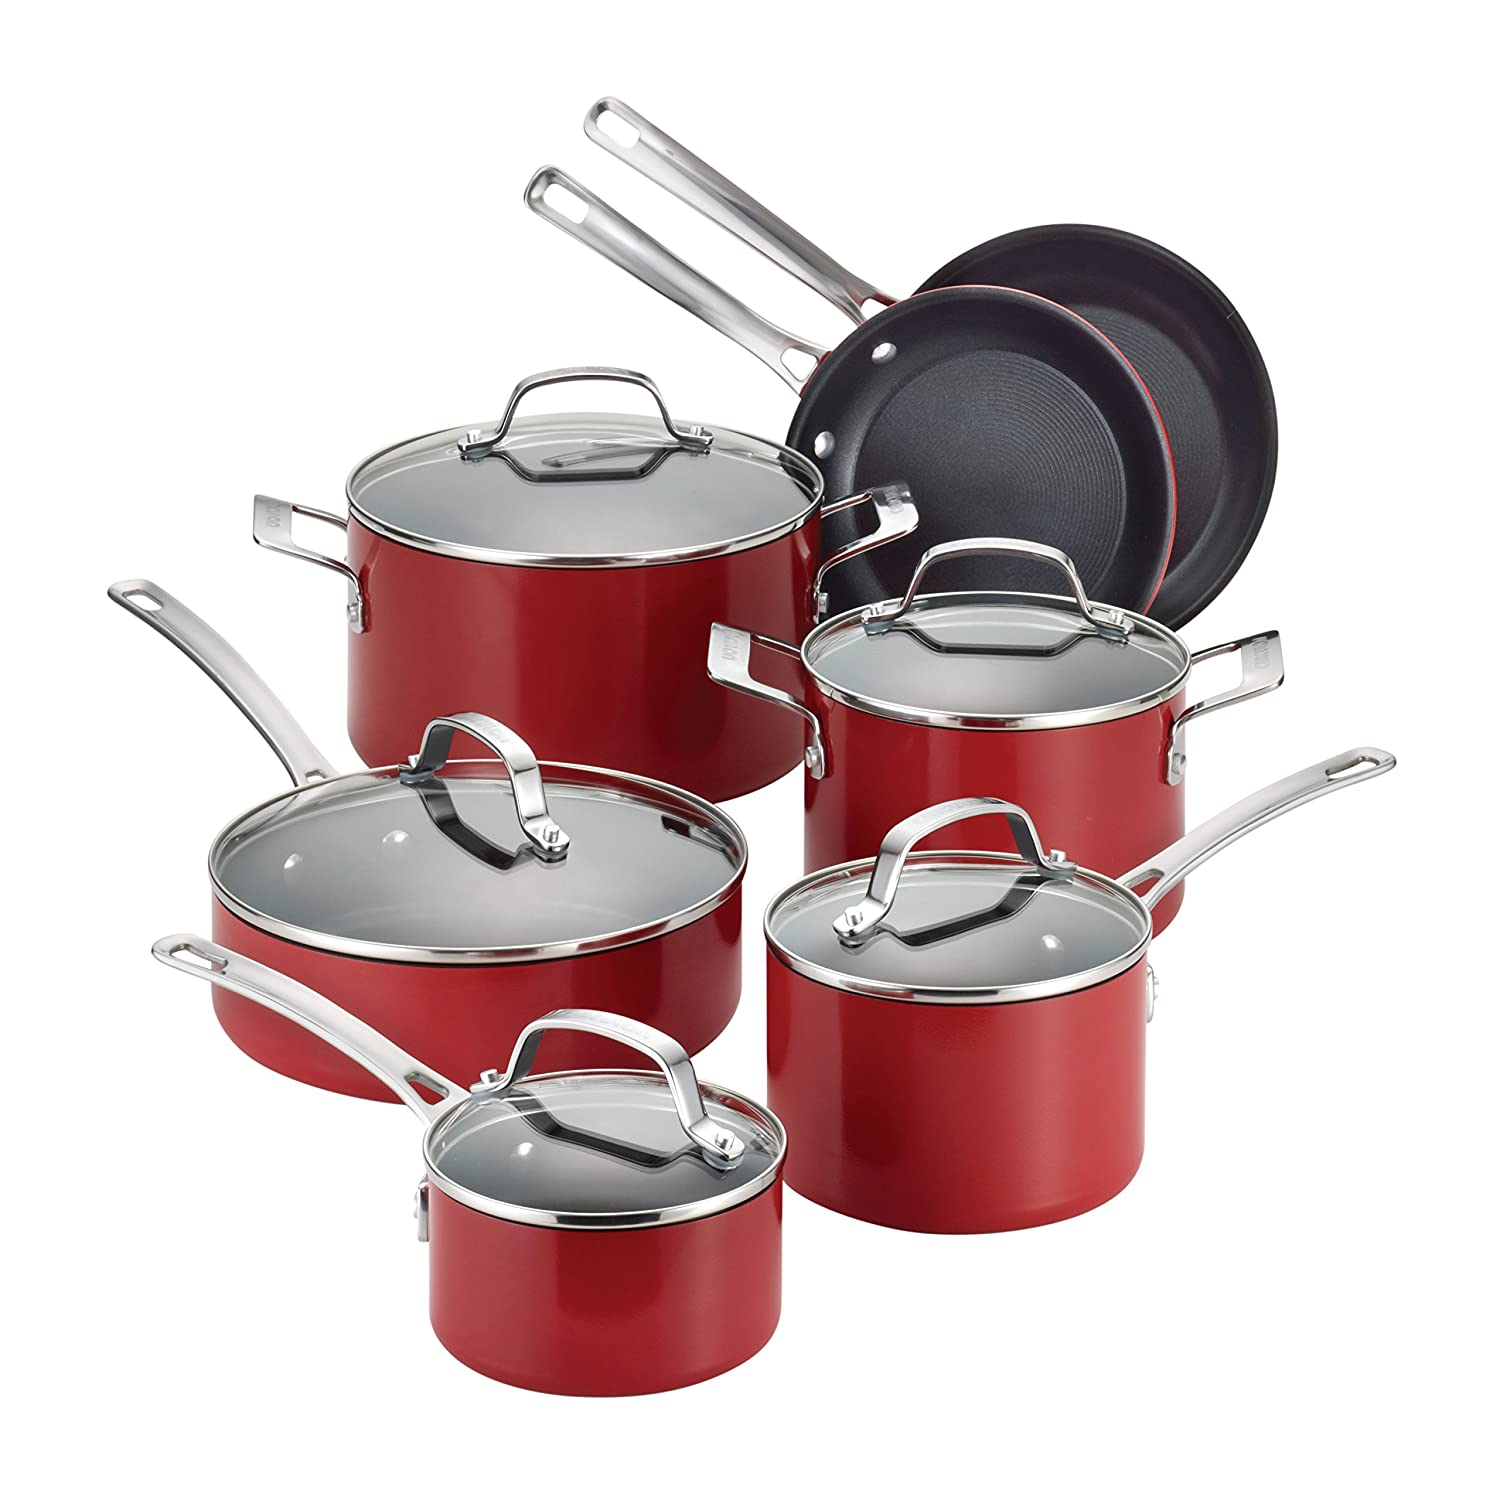 Circulon Genesis Hard-Anodized Nonstick 10-Piece Cookware Set Meyer 83591